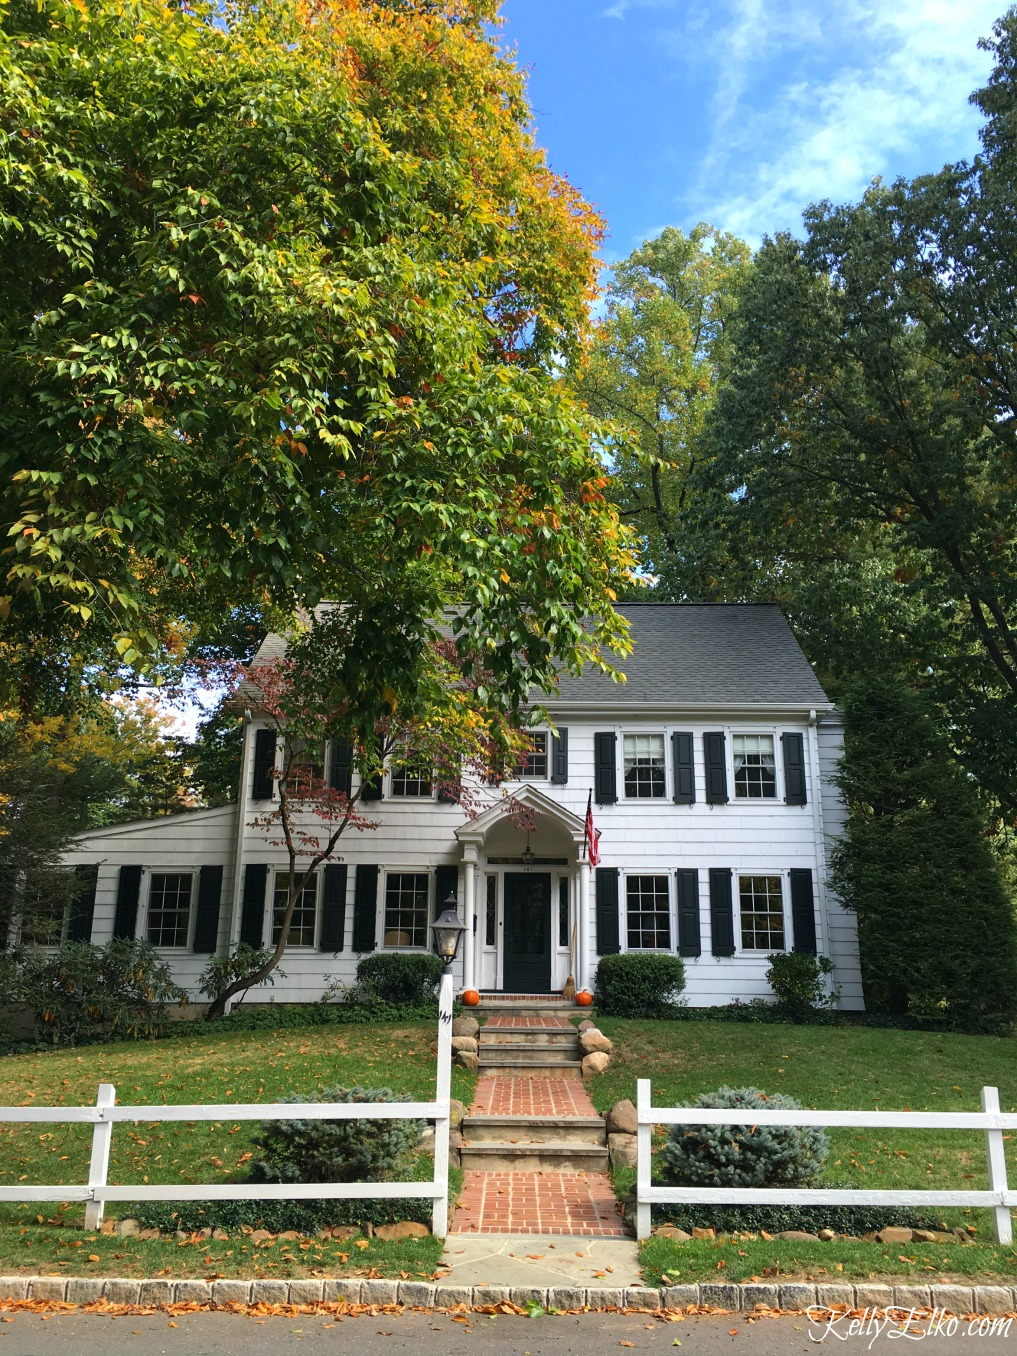 Love this classic white colonial house behind a picket fence - see more fall homes with curb appeal kellyelko.com